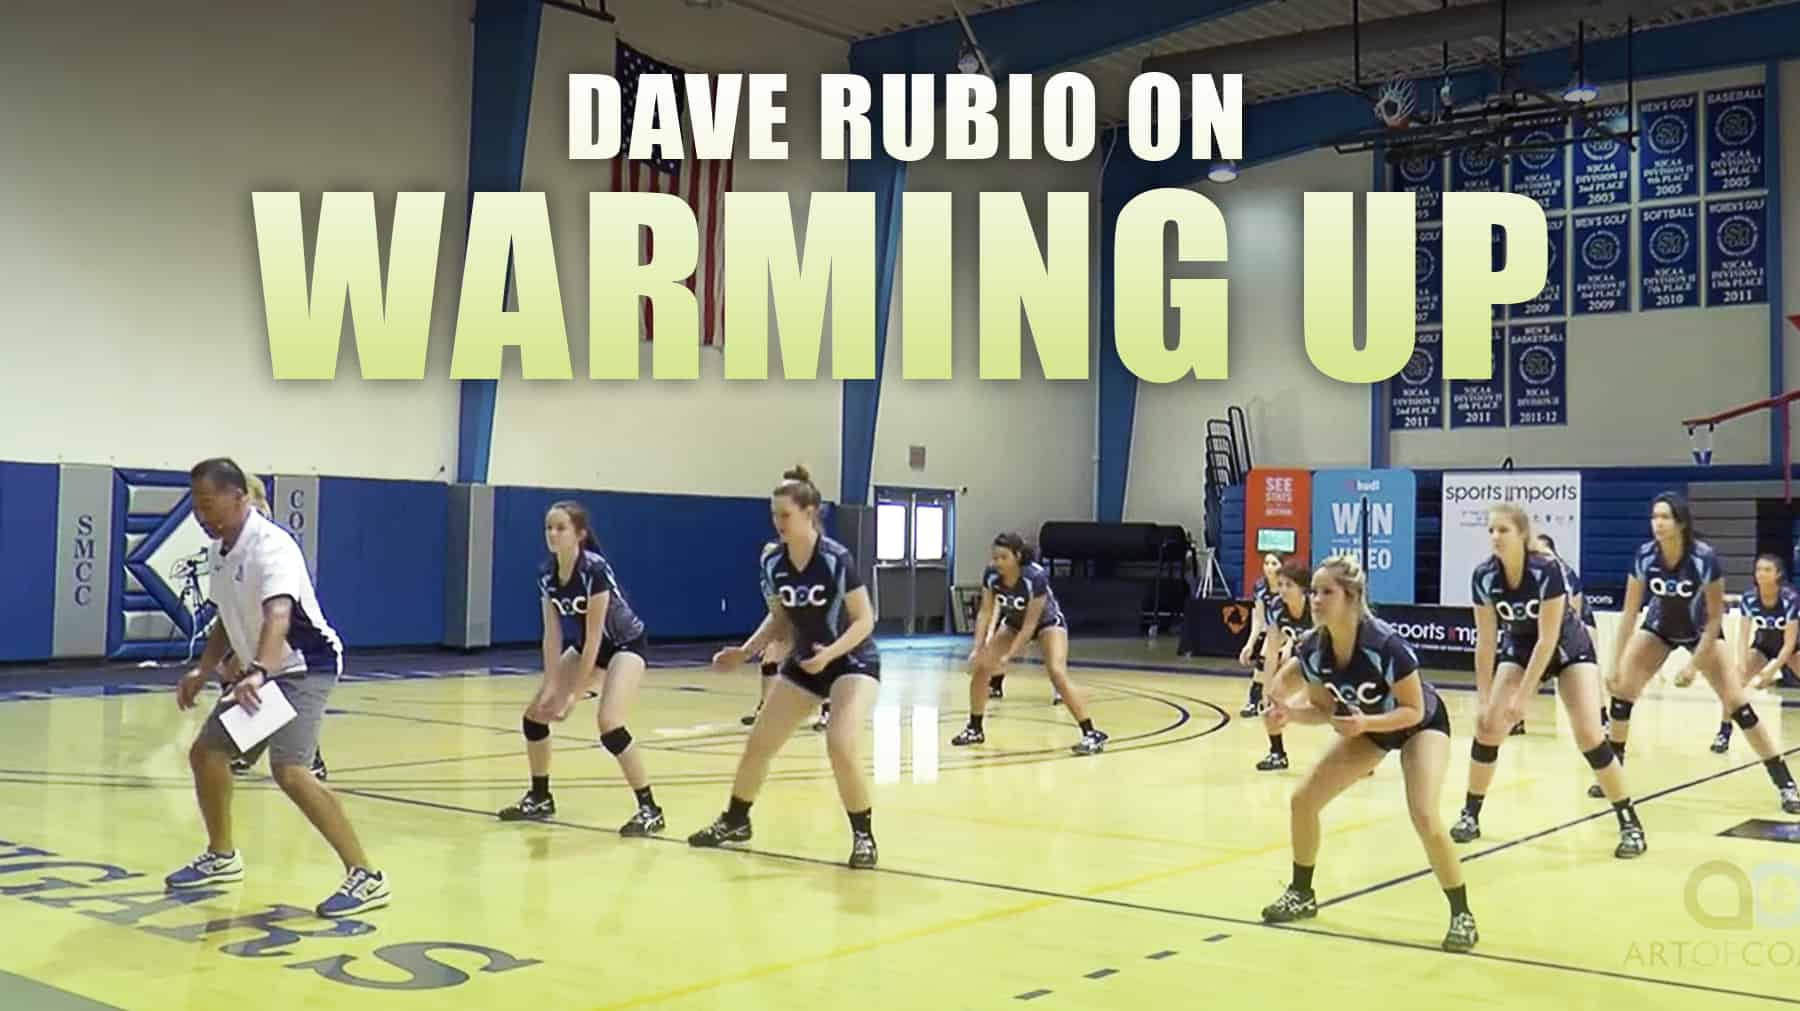 Dave Rubio On Warming Up